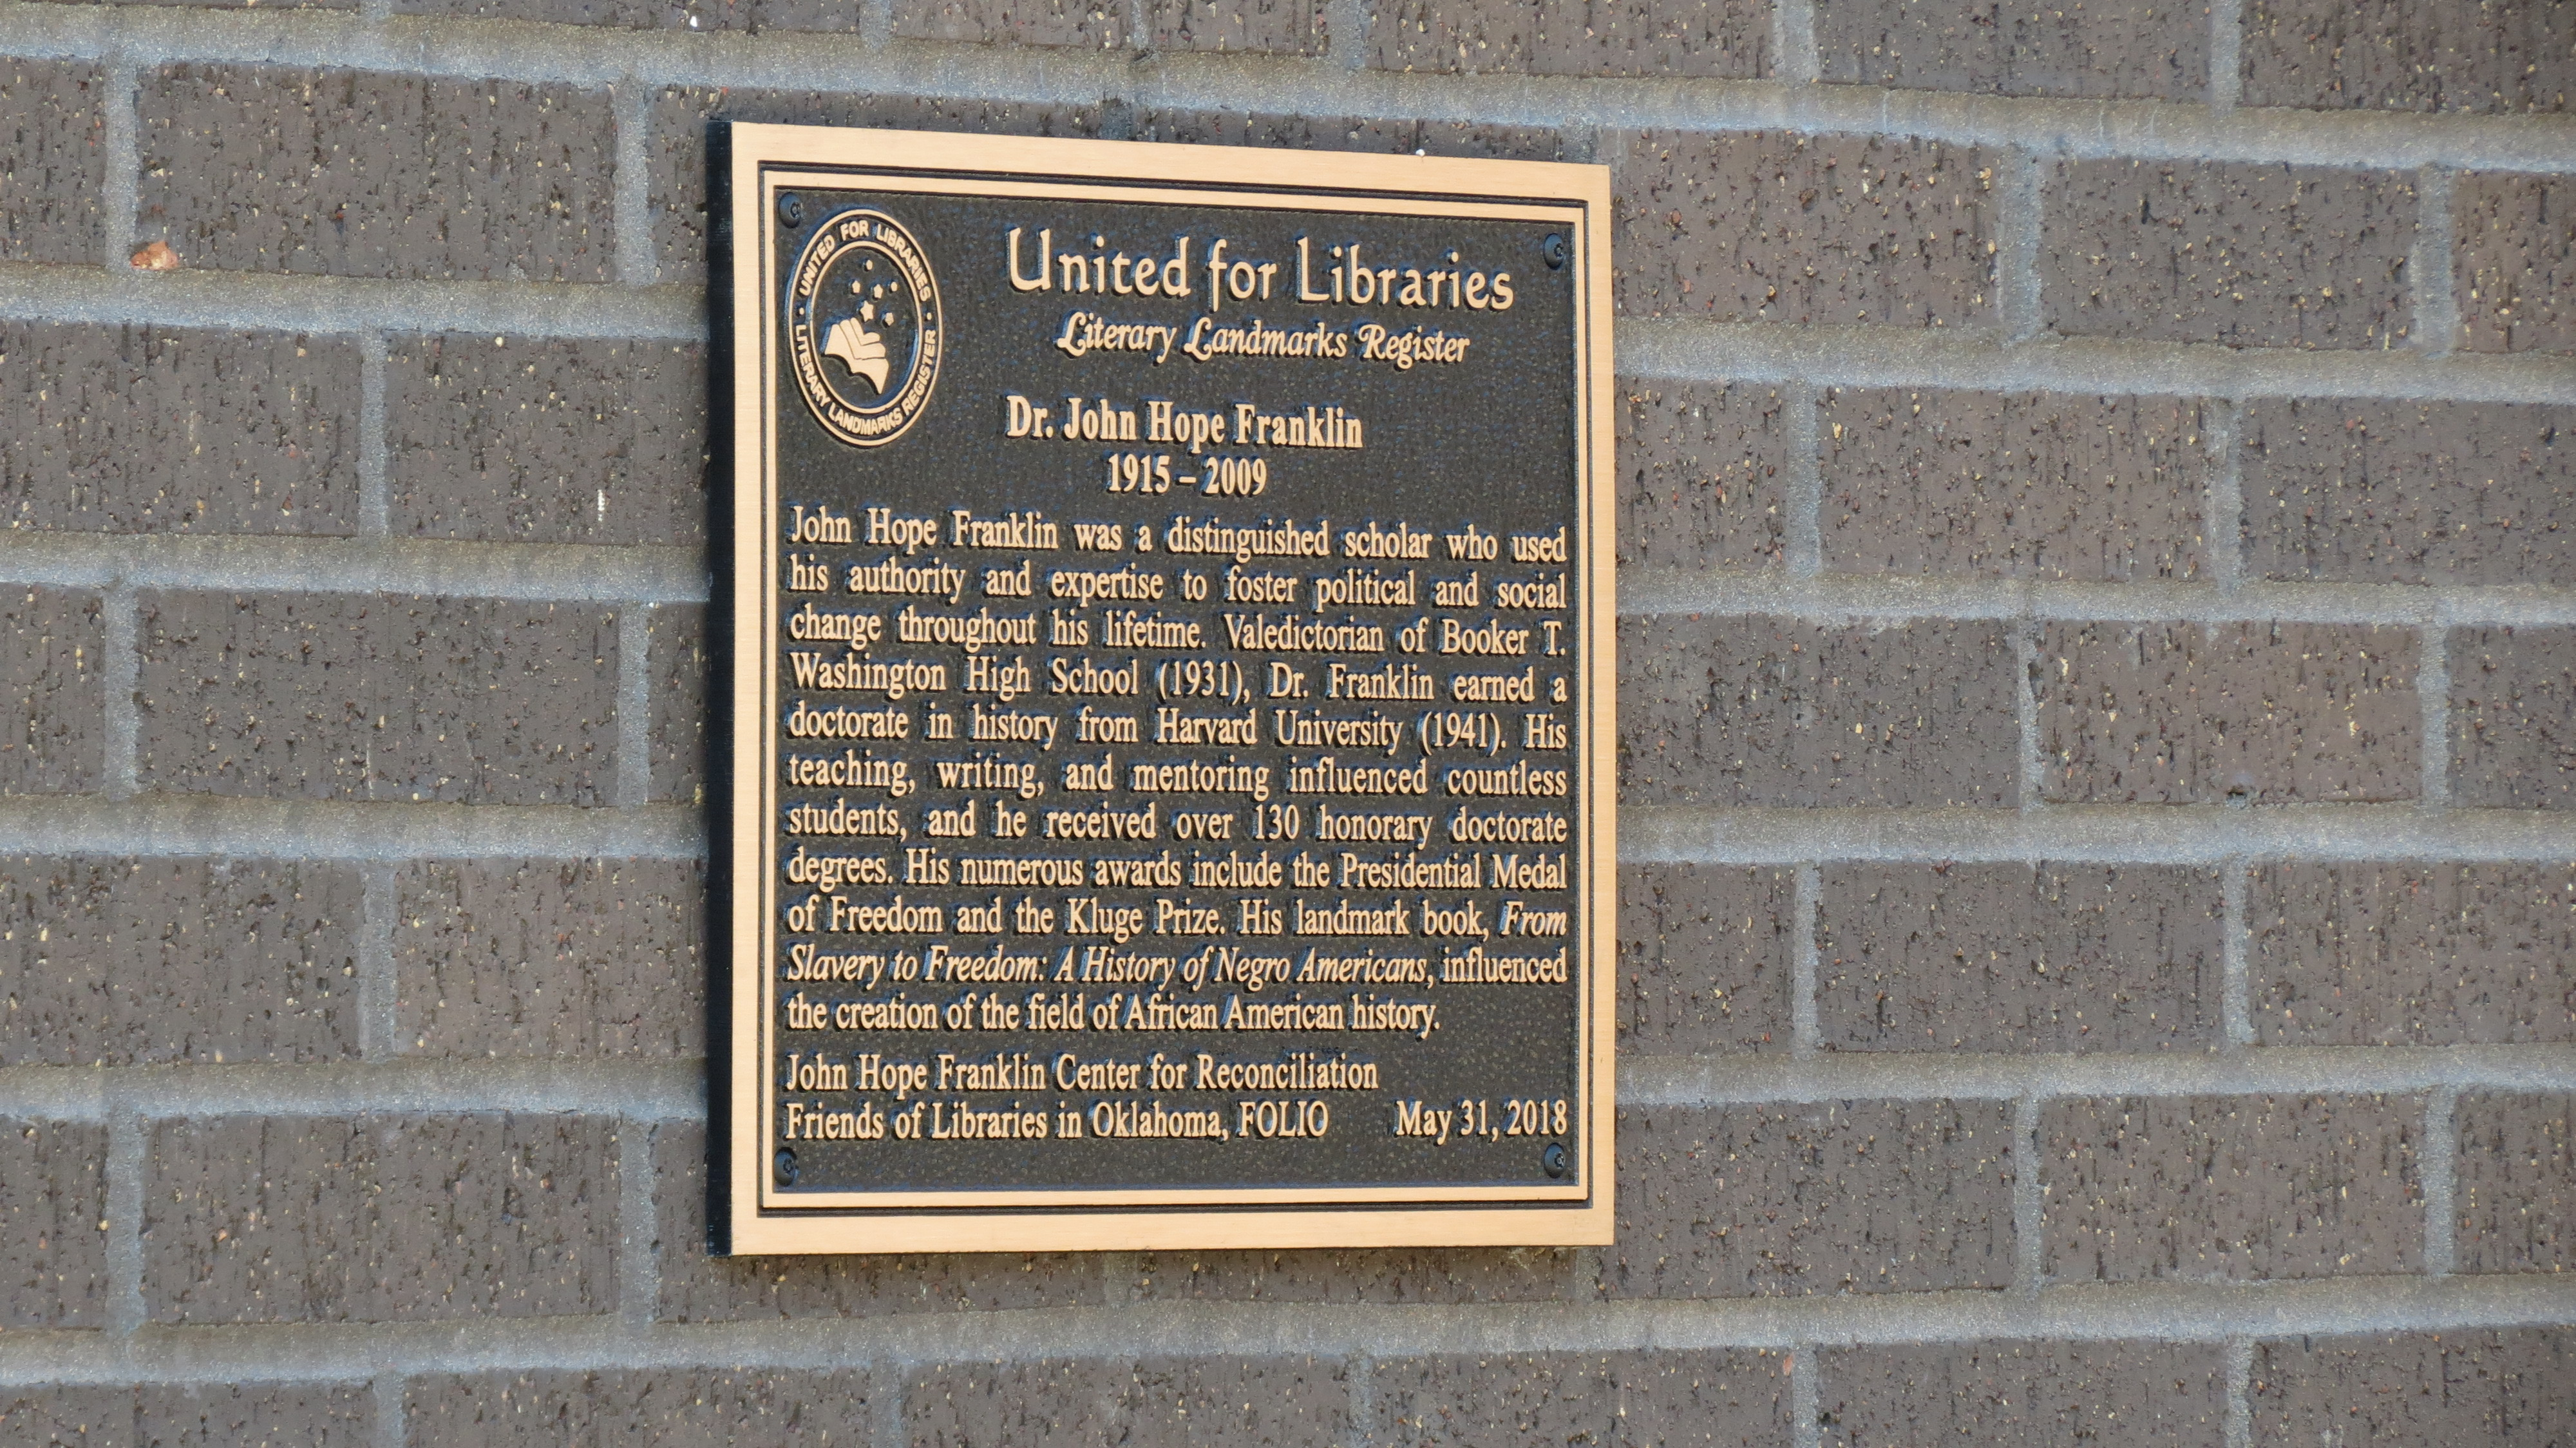 Literary Landmark Plaque